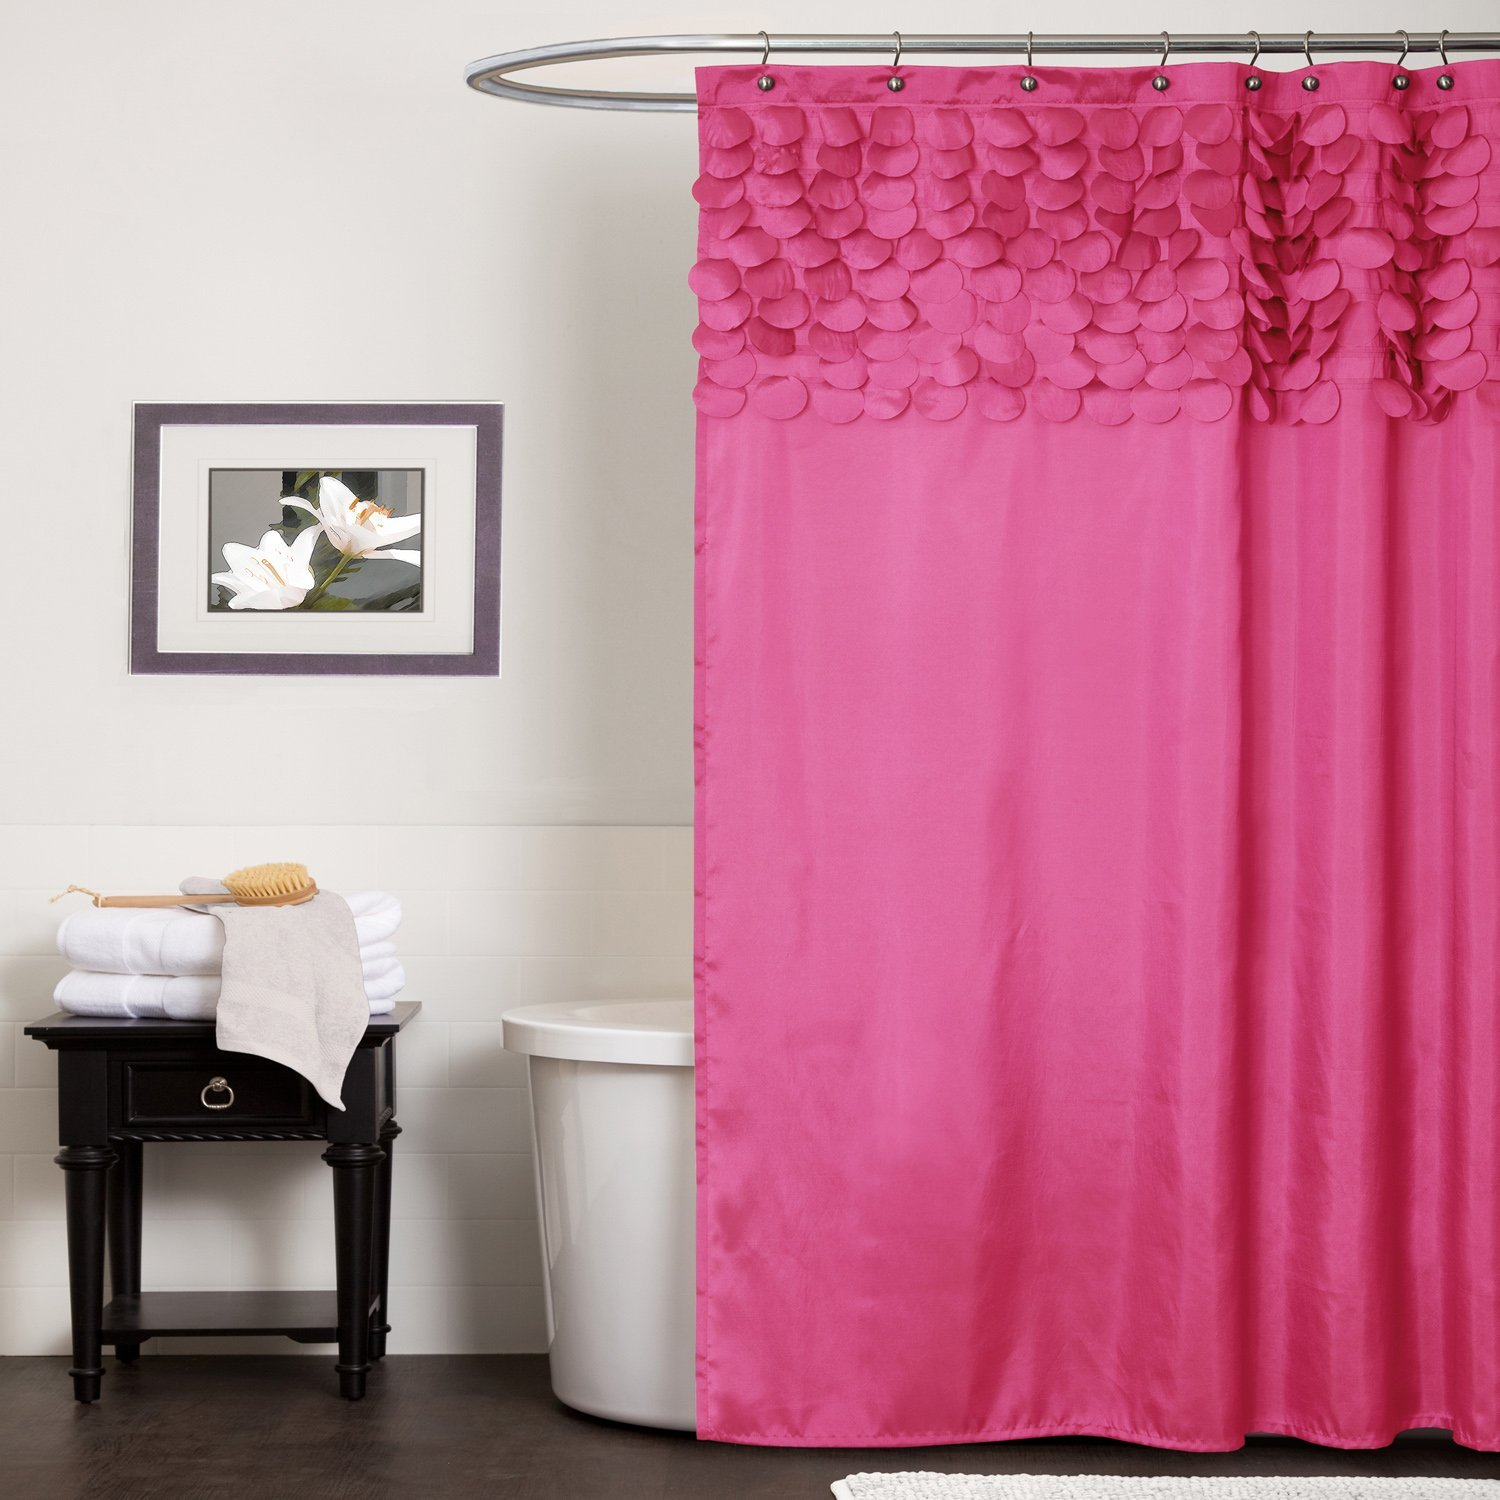 pink-shower-curtain-1